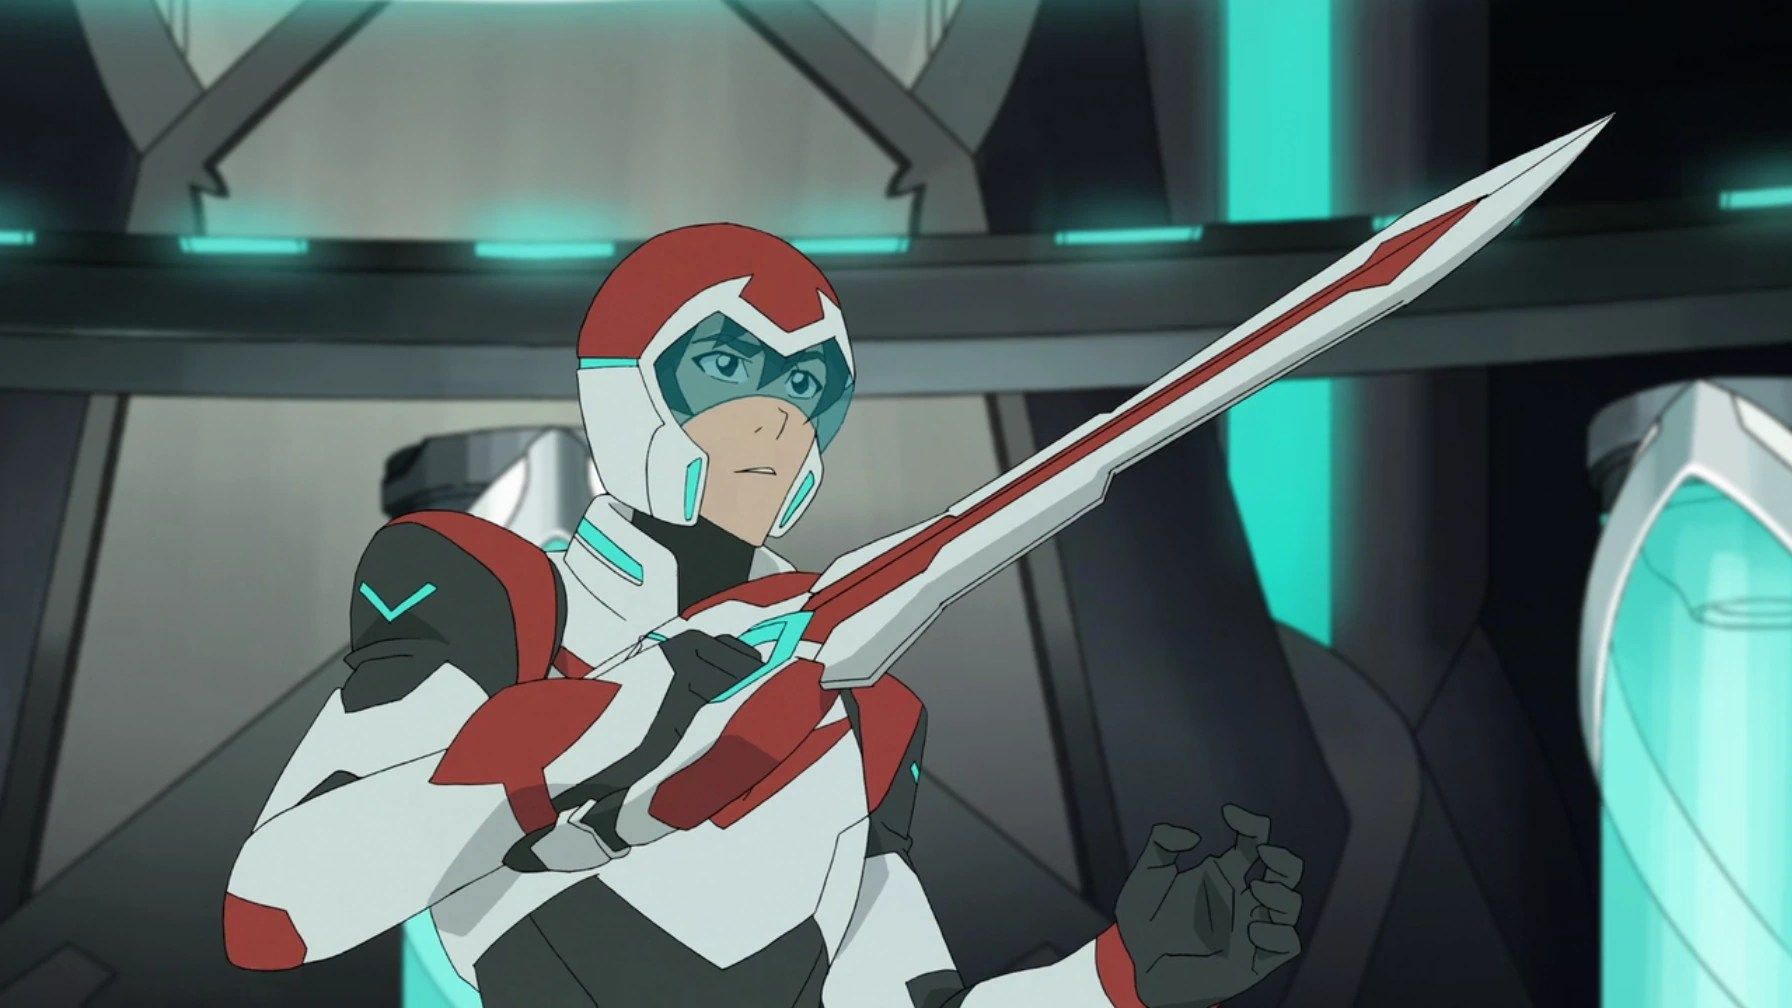 20 Shiro Voltron Bayard Pictures And Ideas On Meta Networks